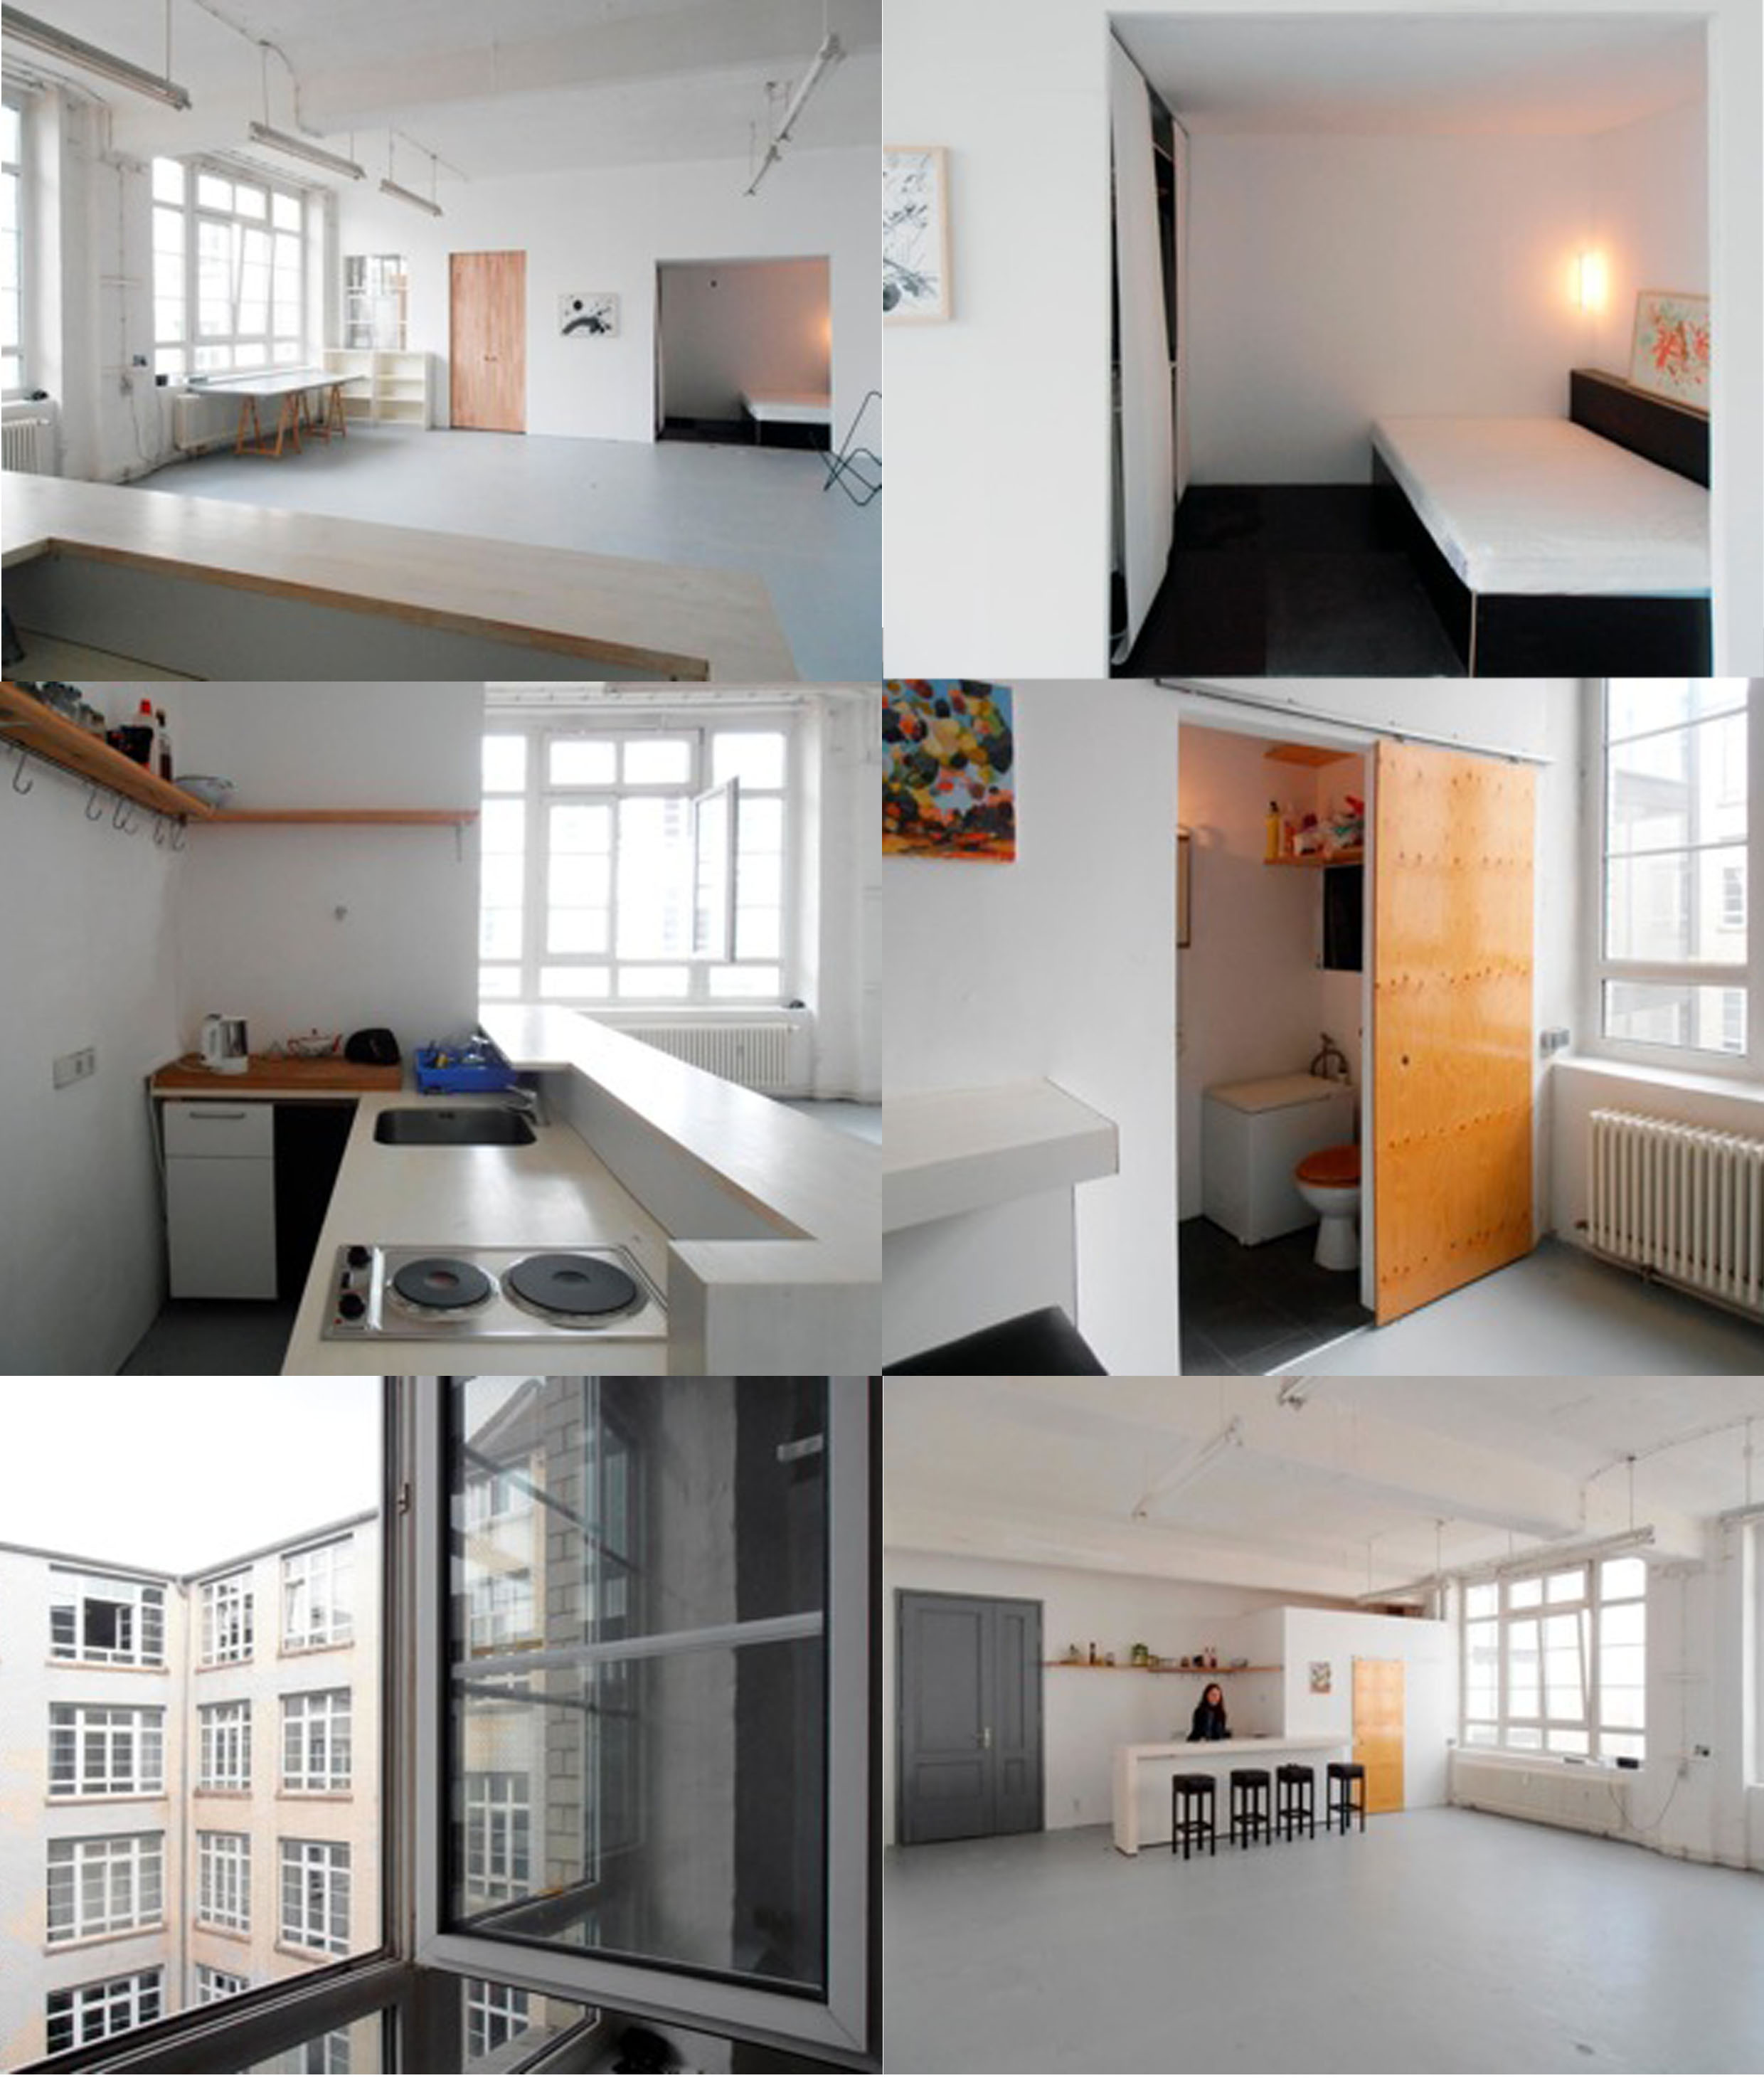 loft rent studio living place in berlin october 2013. Black Bedroom Furniture Sets. Home Design Ideas